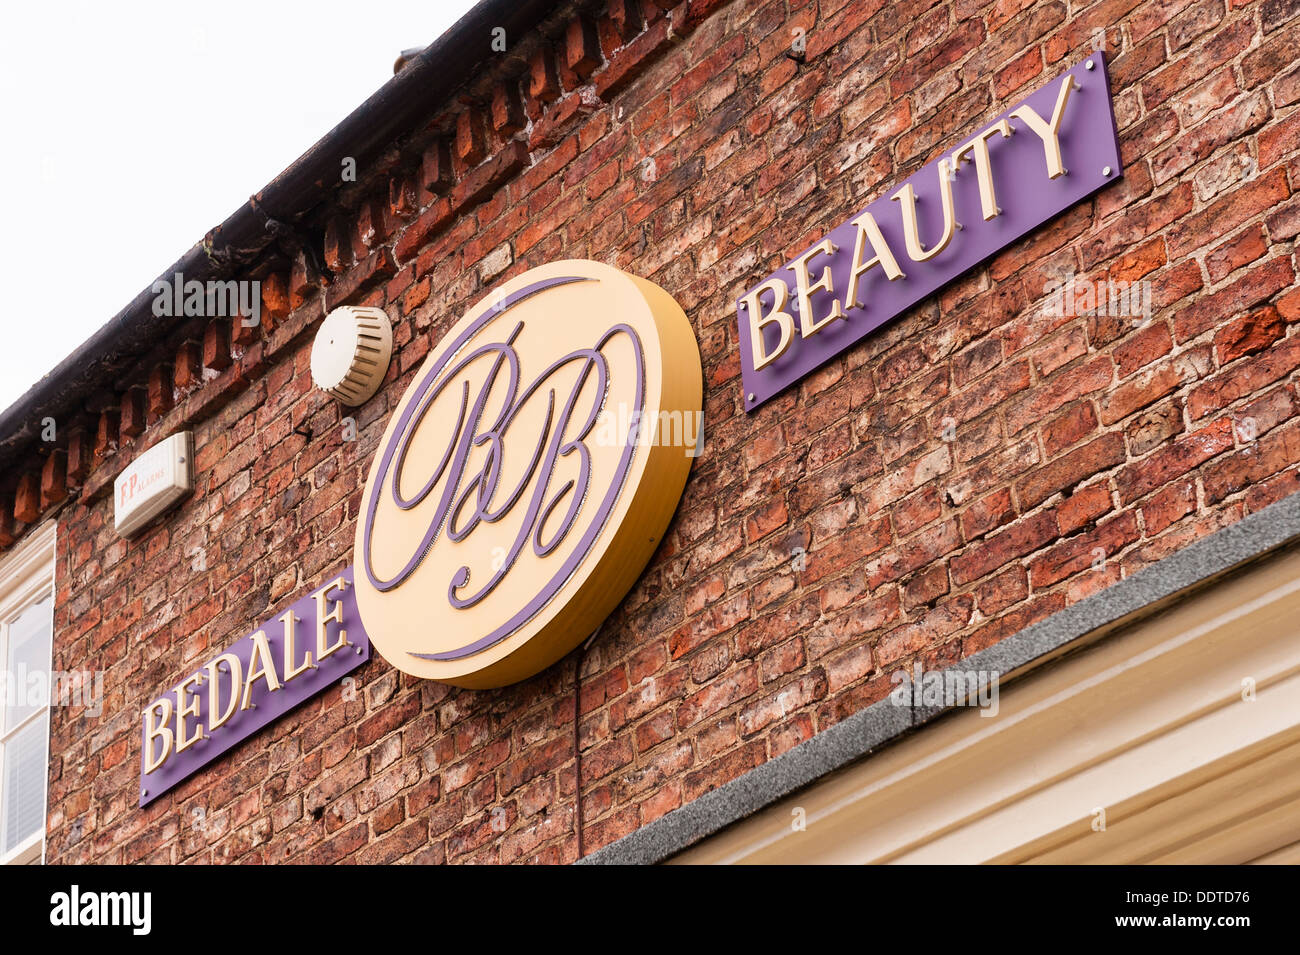 Beauty Salon Sign High Resolution Stock Photography and Images - Alamy